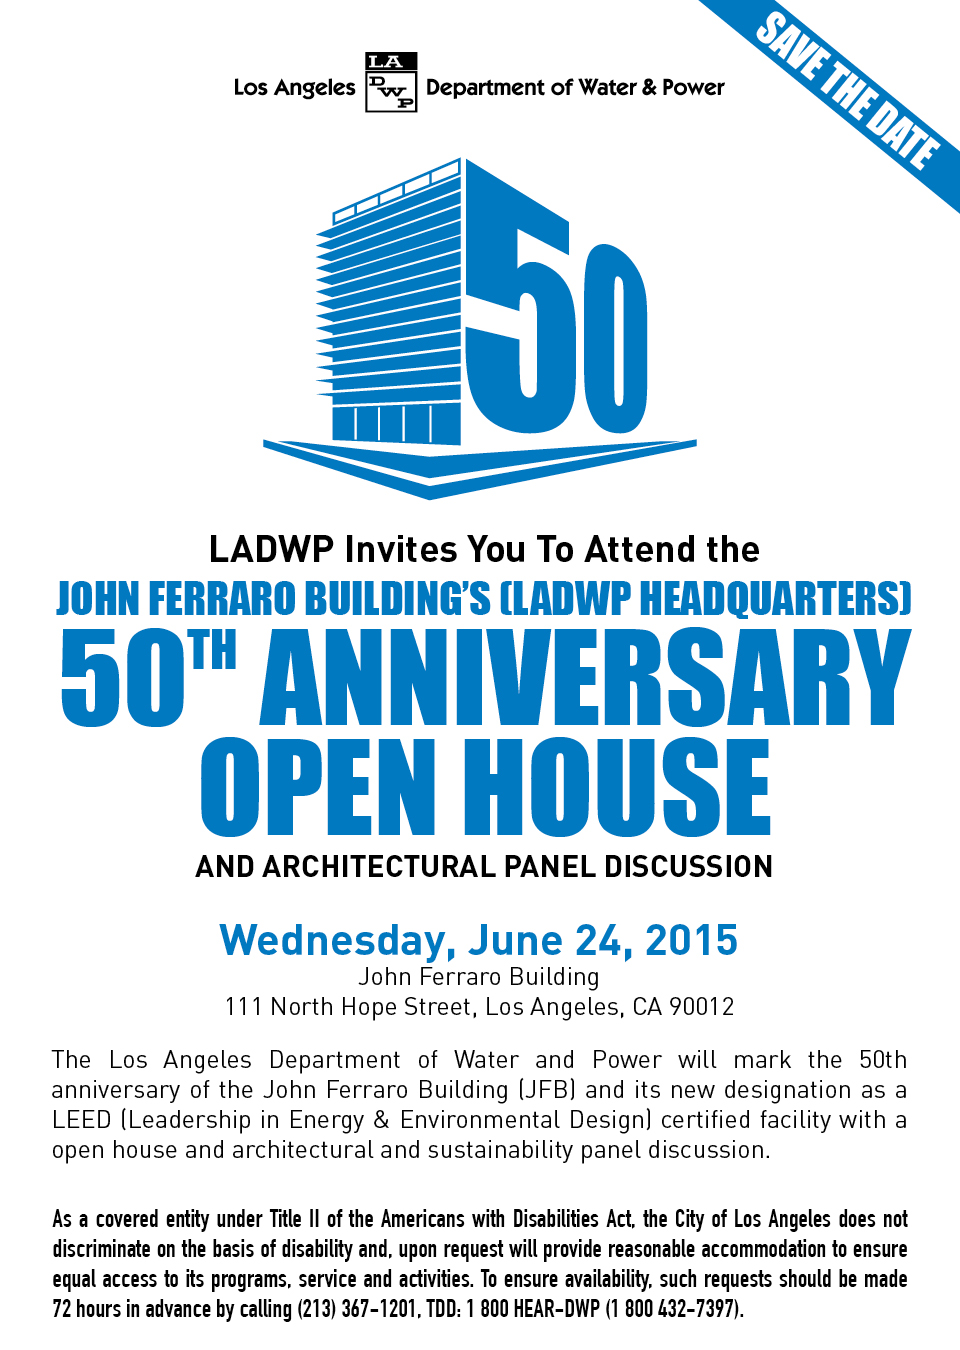 LADWP 50th Anniversary Open House – Empower LA